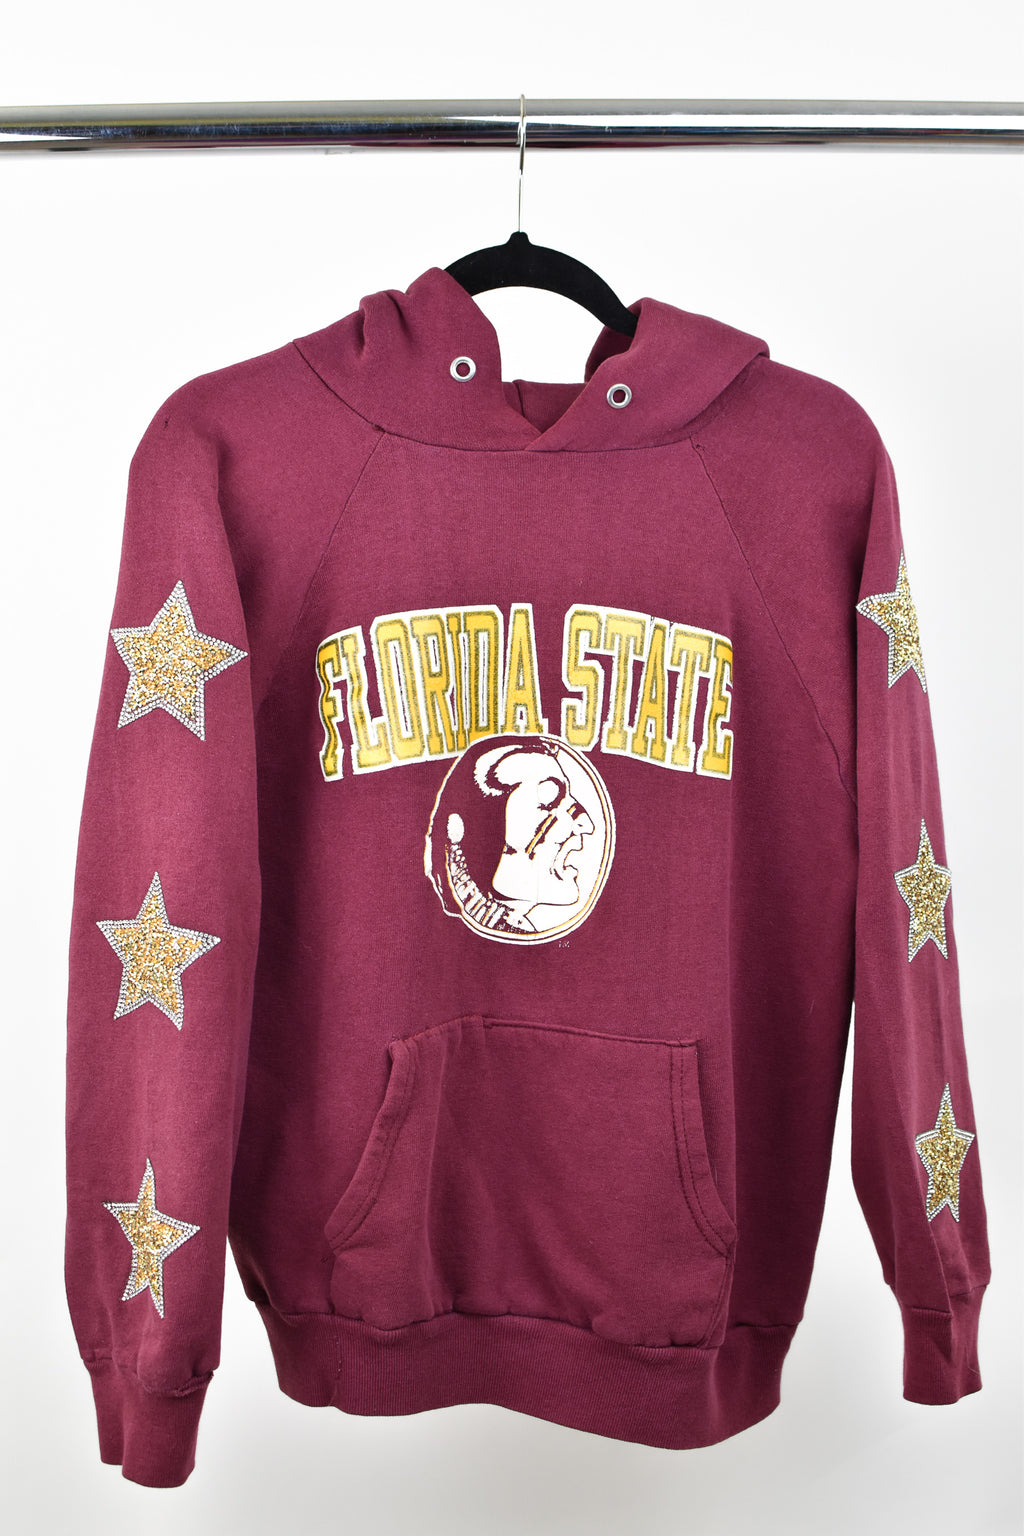 Upcycled VINTAGE Florida State University Star Rhinestone Sweatshirt